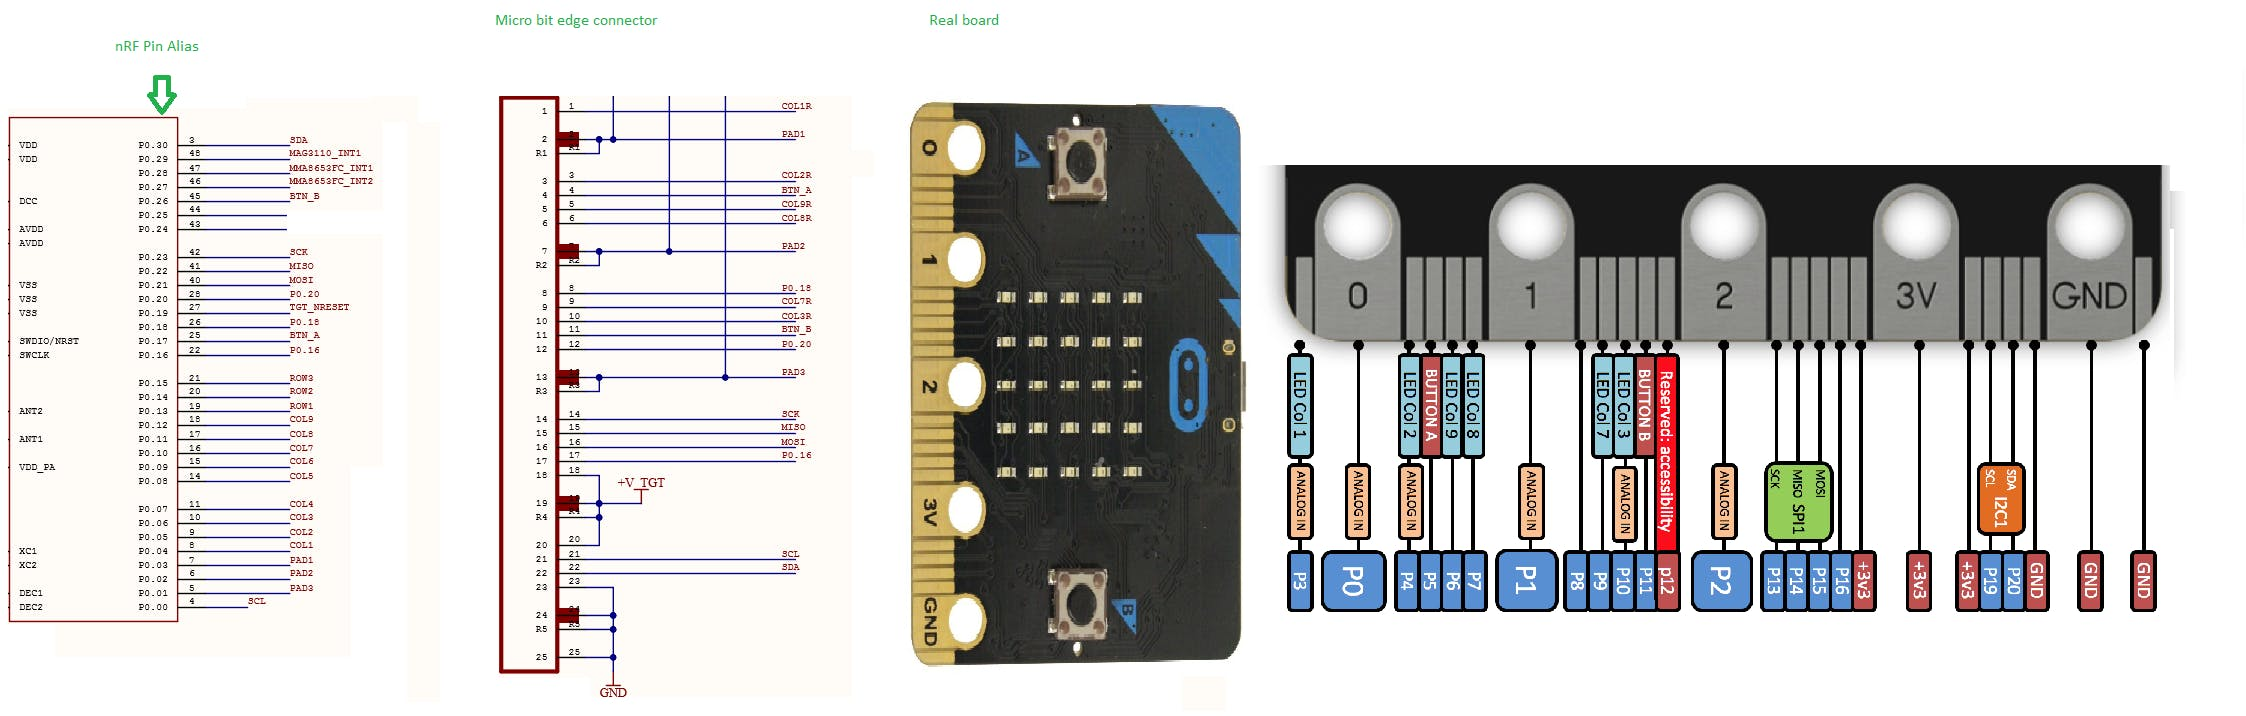 pin alias on mbed for nRF51822